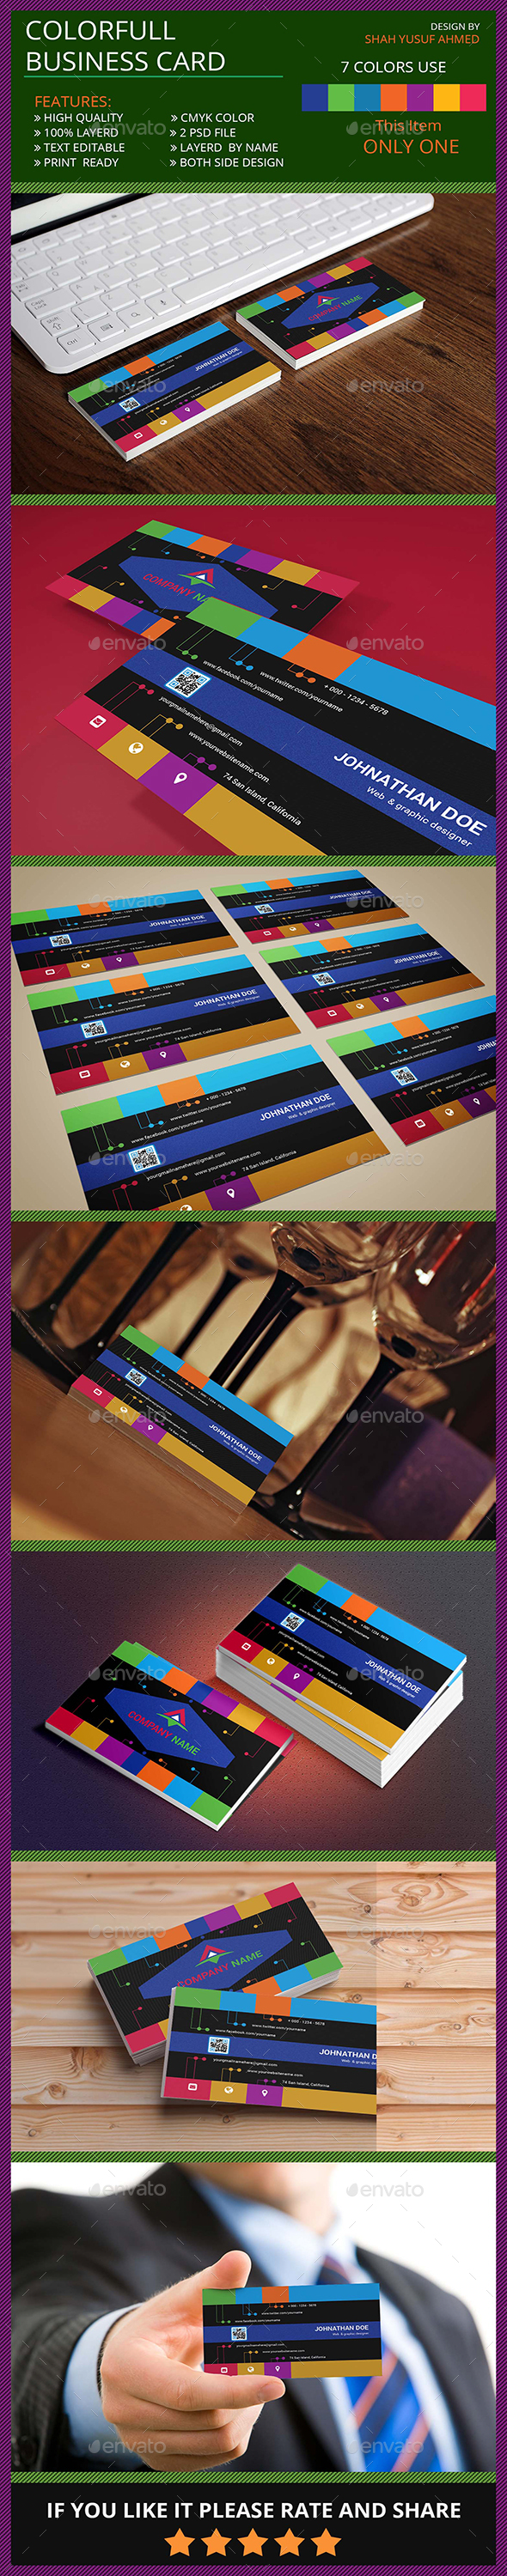 Colorfull Business Card - Creative Business Cards